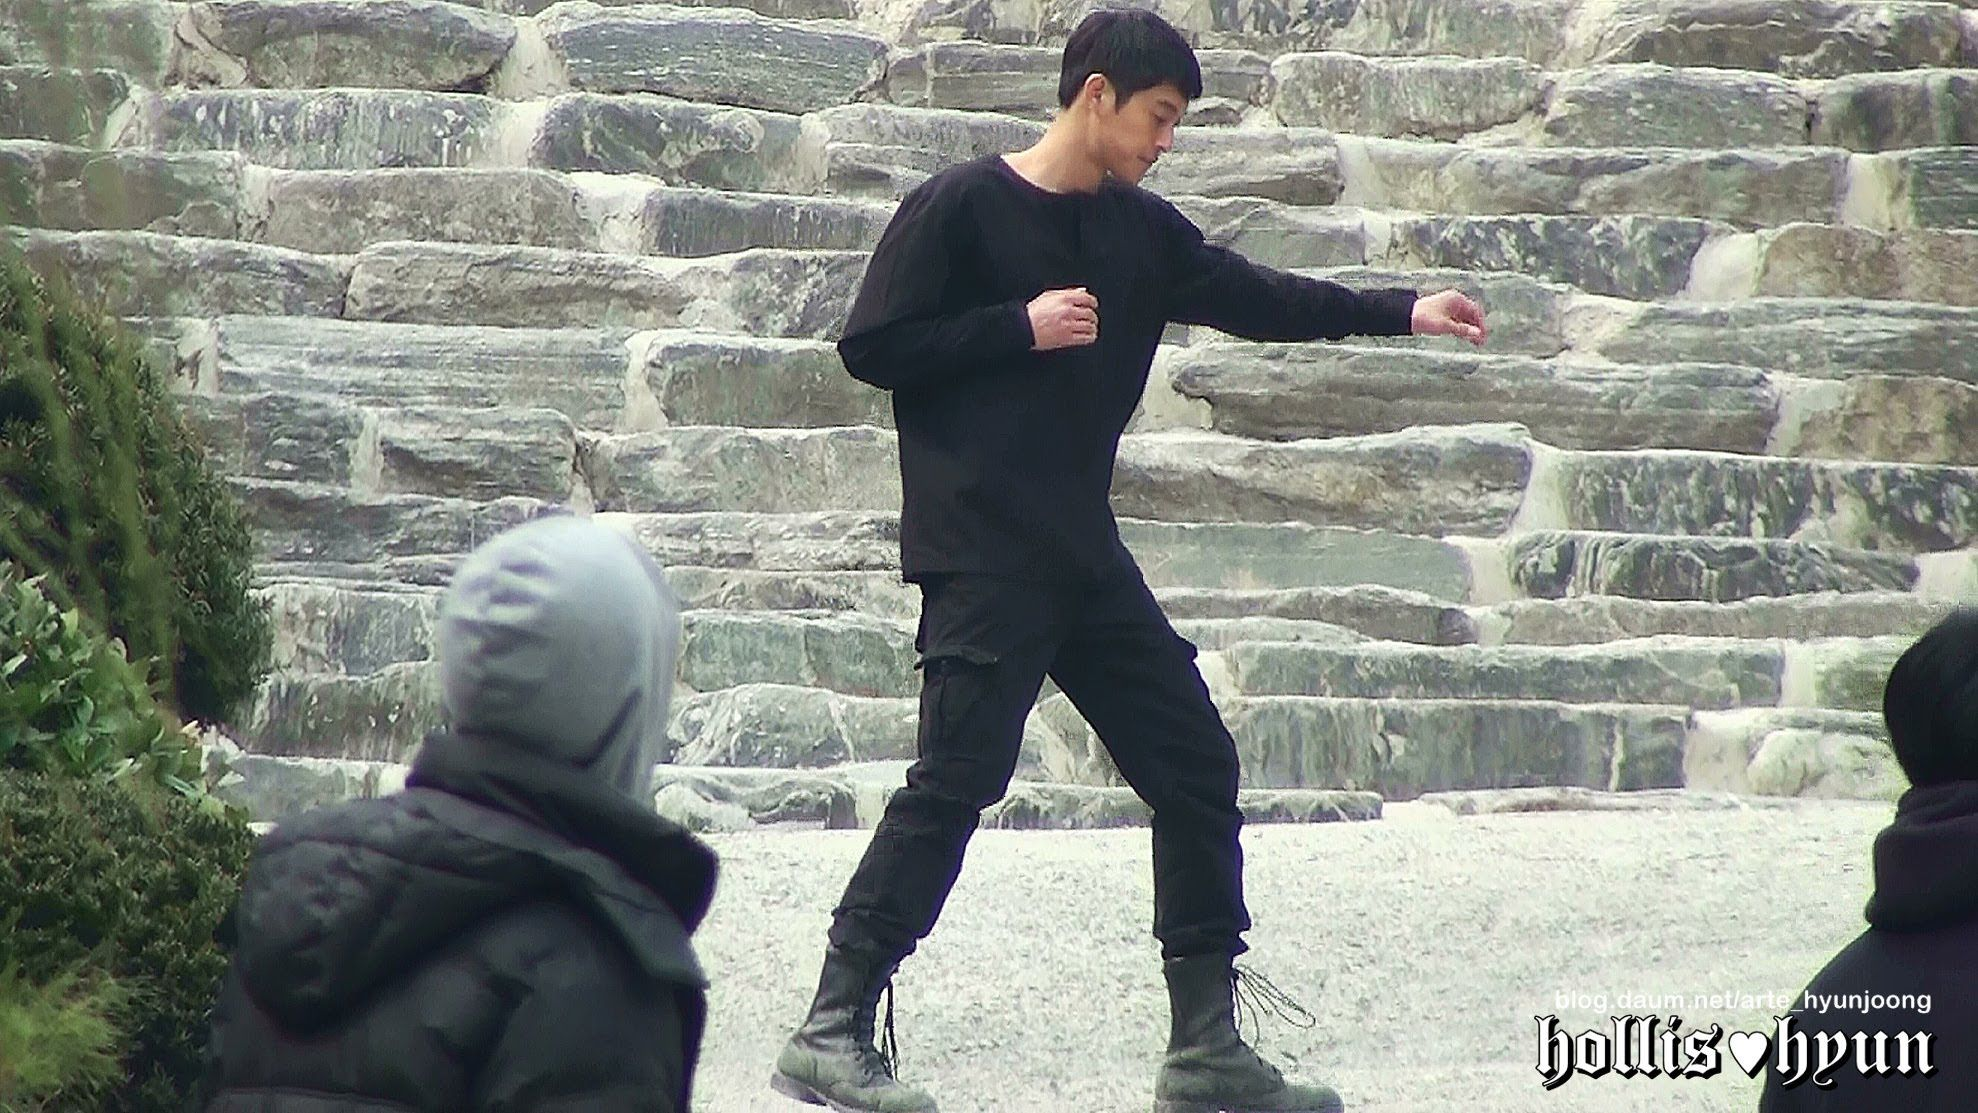 140304 Kim Hyun Joong 김현중 - 감격시대 Lovely Fighter Jungtae@Wawoo Temple/TIME 4:09 - POSTED 10APR2014 - 9Kviews please reshare it